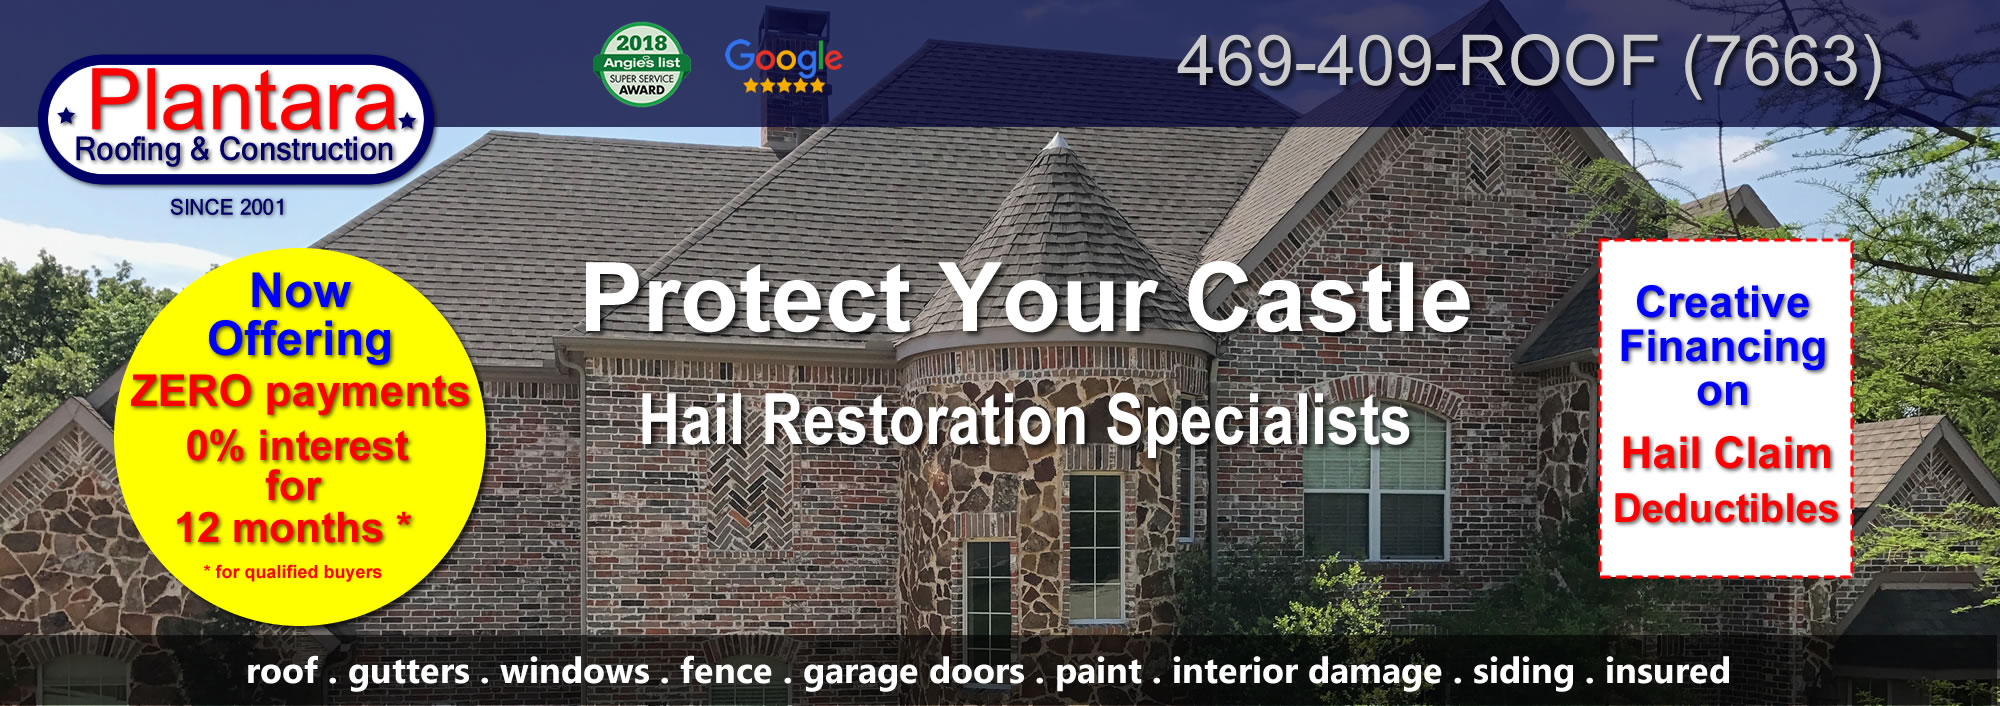 Roofing company specializing in roof installation